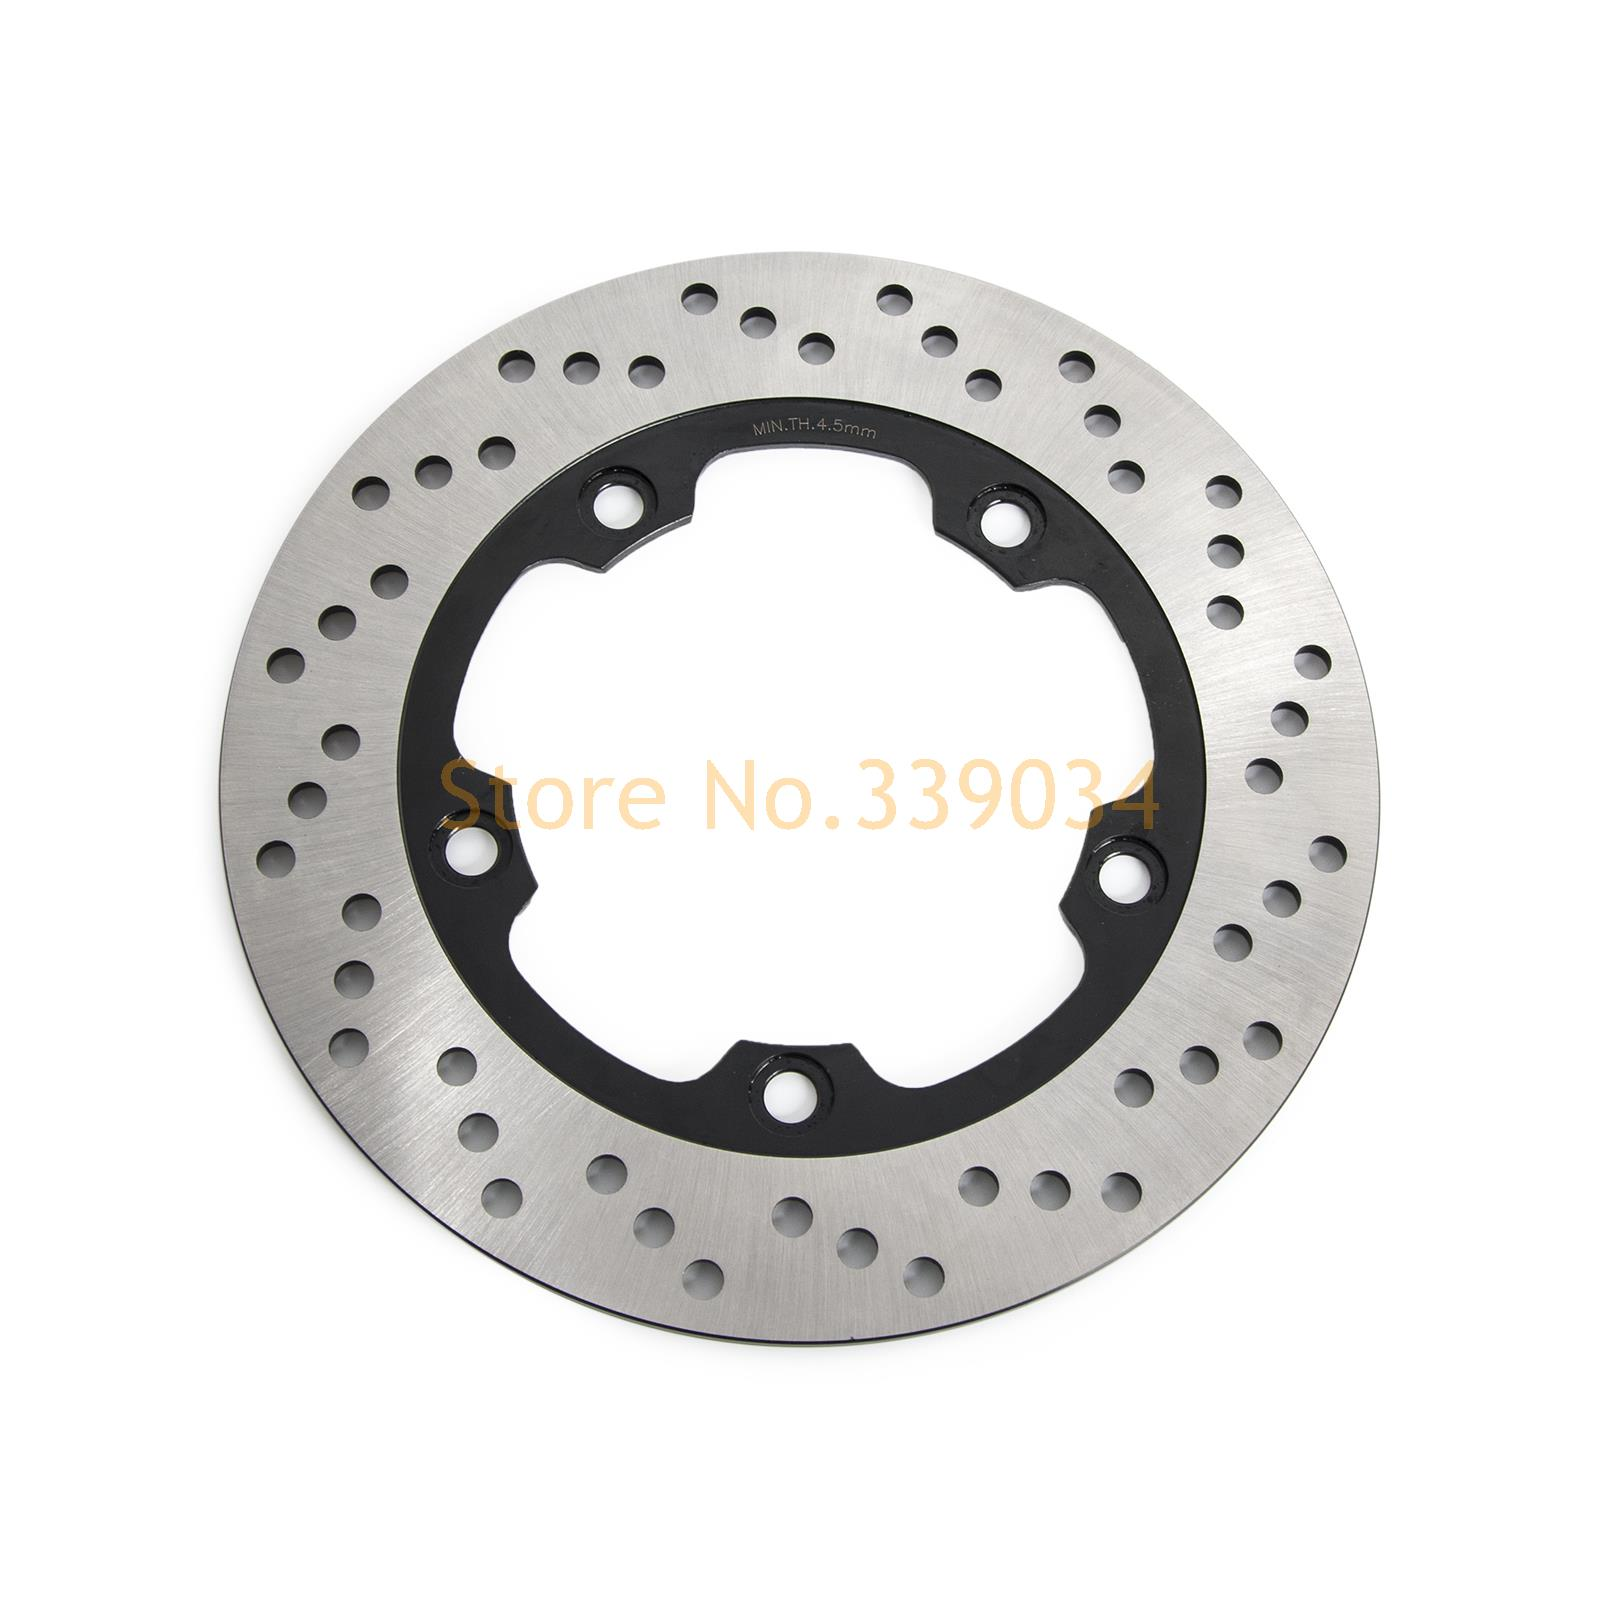 ФОТО New Motorcycle Rear  Rotor Brake Disc For Suzuki Bandit 1200 1250 GSF 650 750  GSR 600 GSX 650 Inazuma 250Z (GW250) 2012-2016